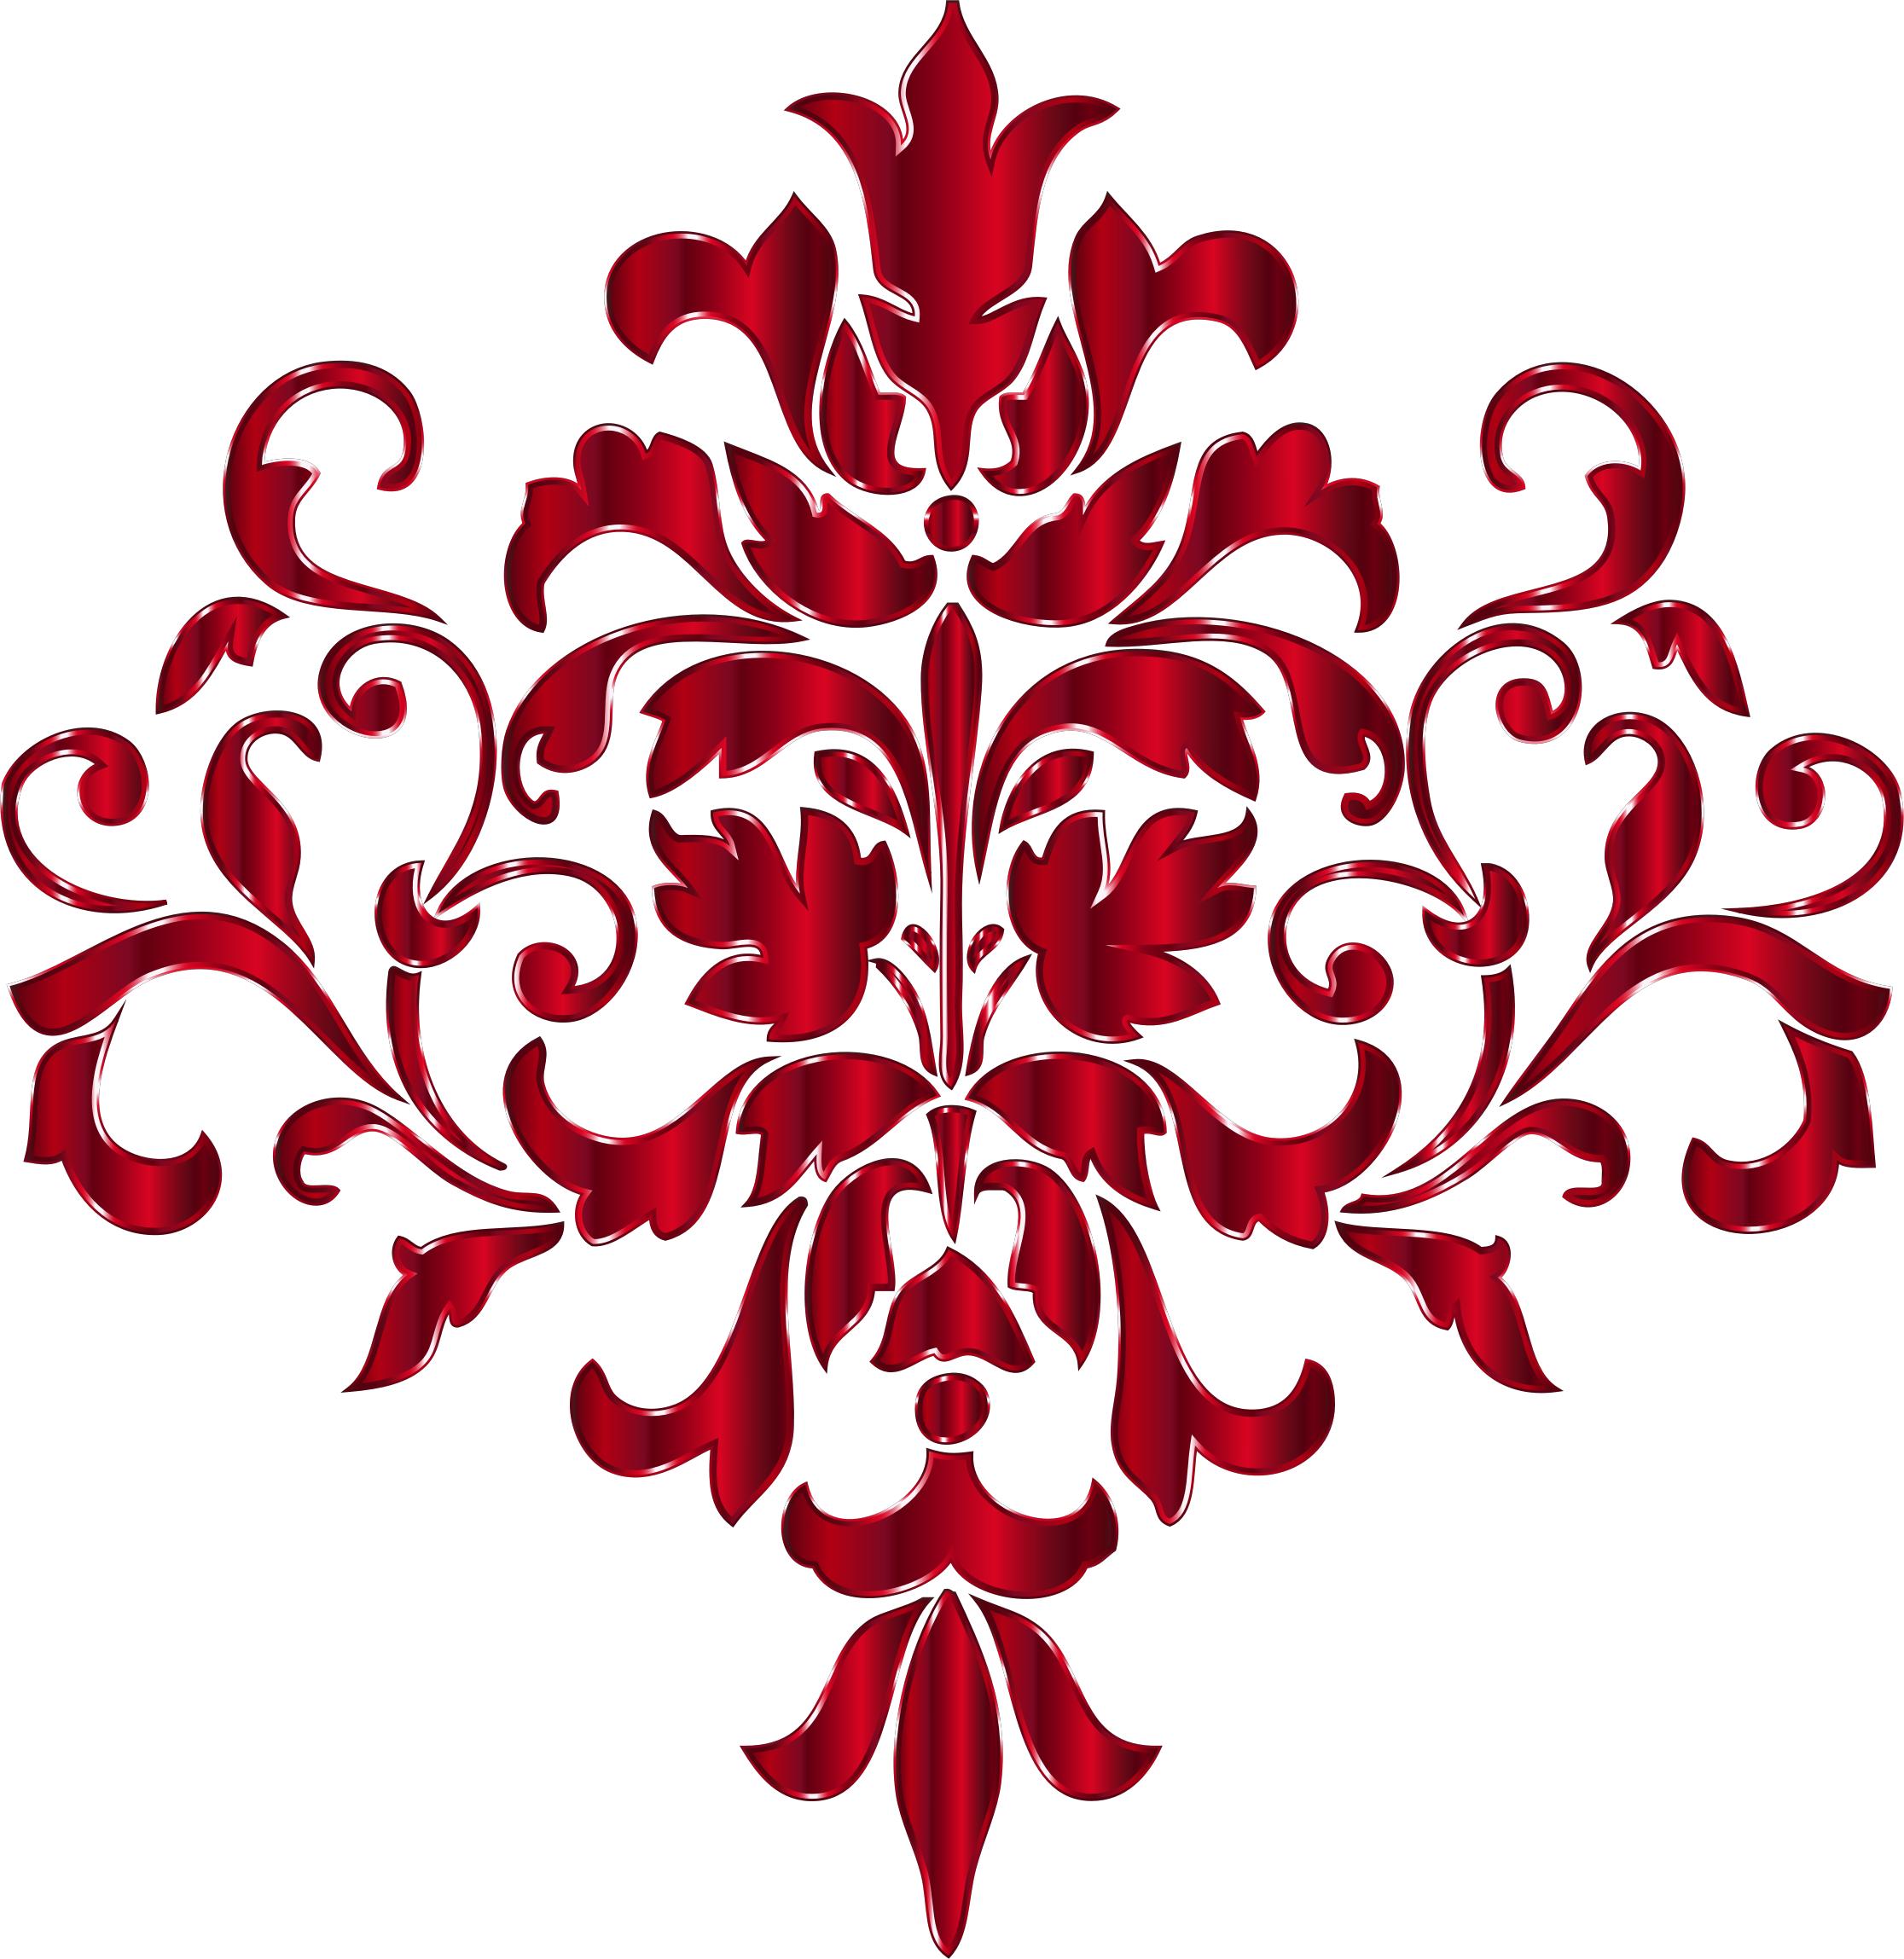 Crimson Damask Design No Background by GDJ